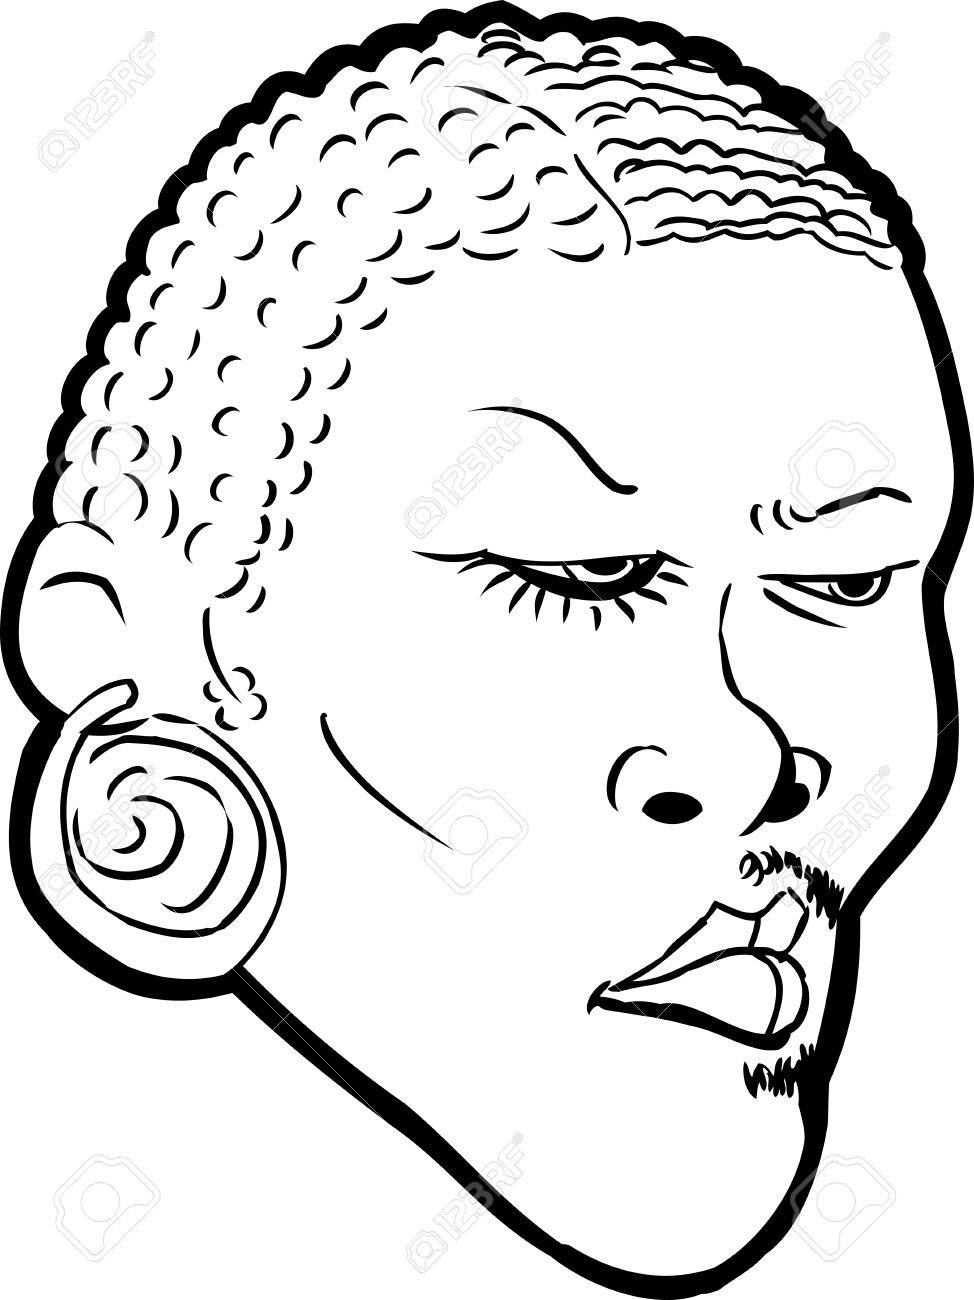 974x1300 Cartoon Outlined Face Of Black Man With Half Face In Makeup Over